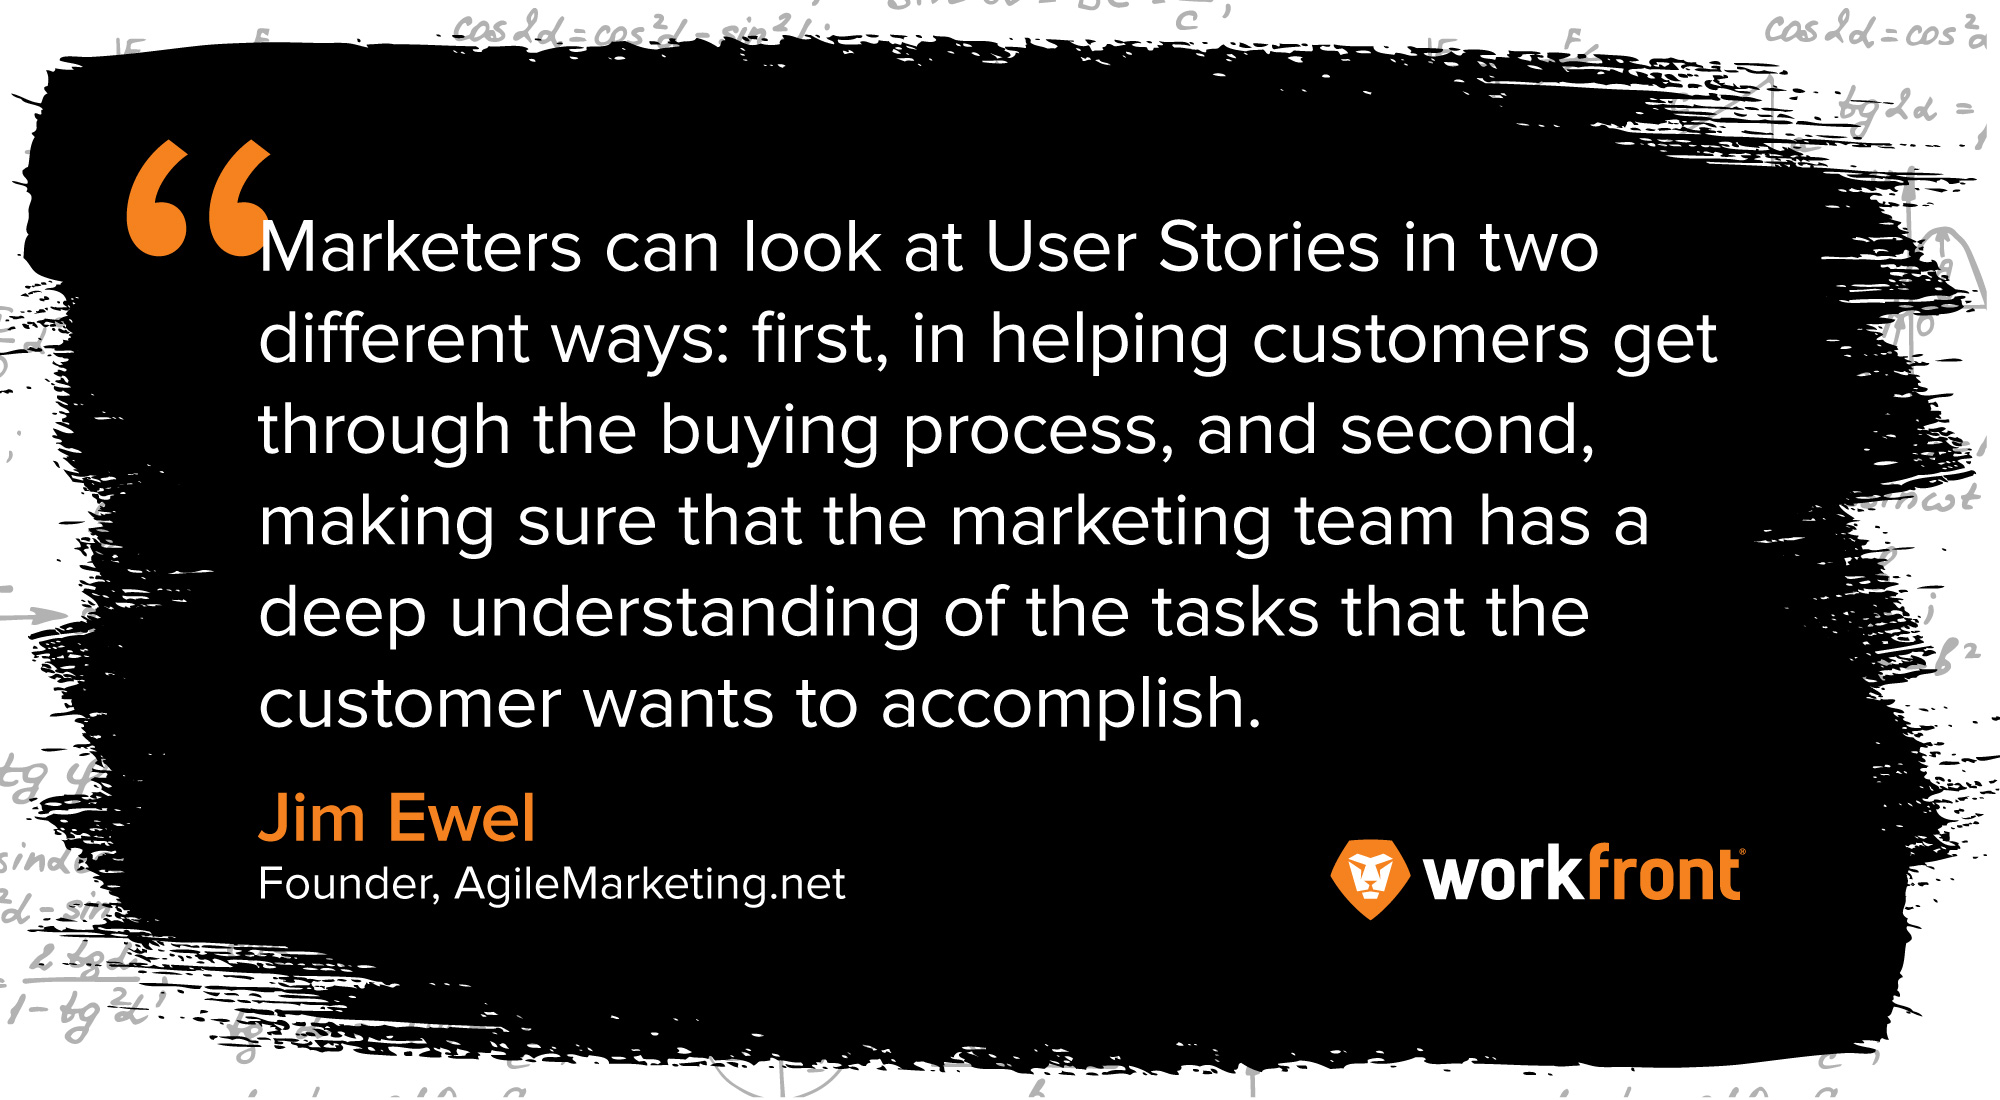 jim ewel quote agile marketer user stories